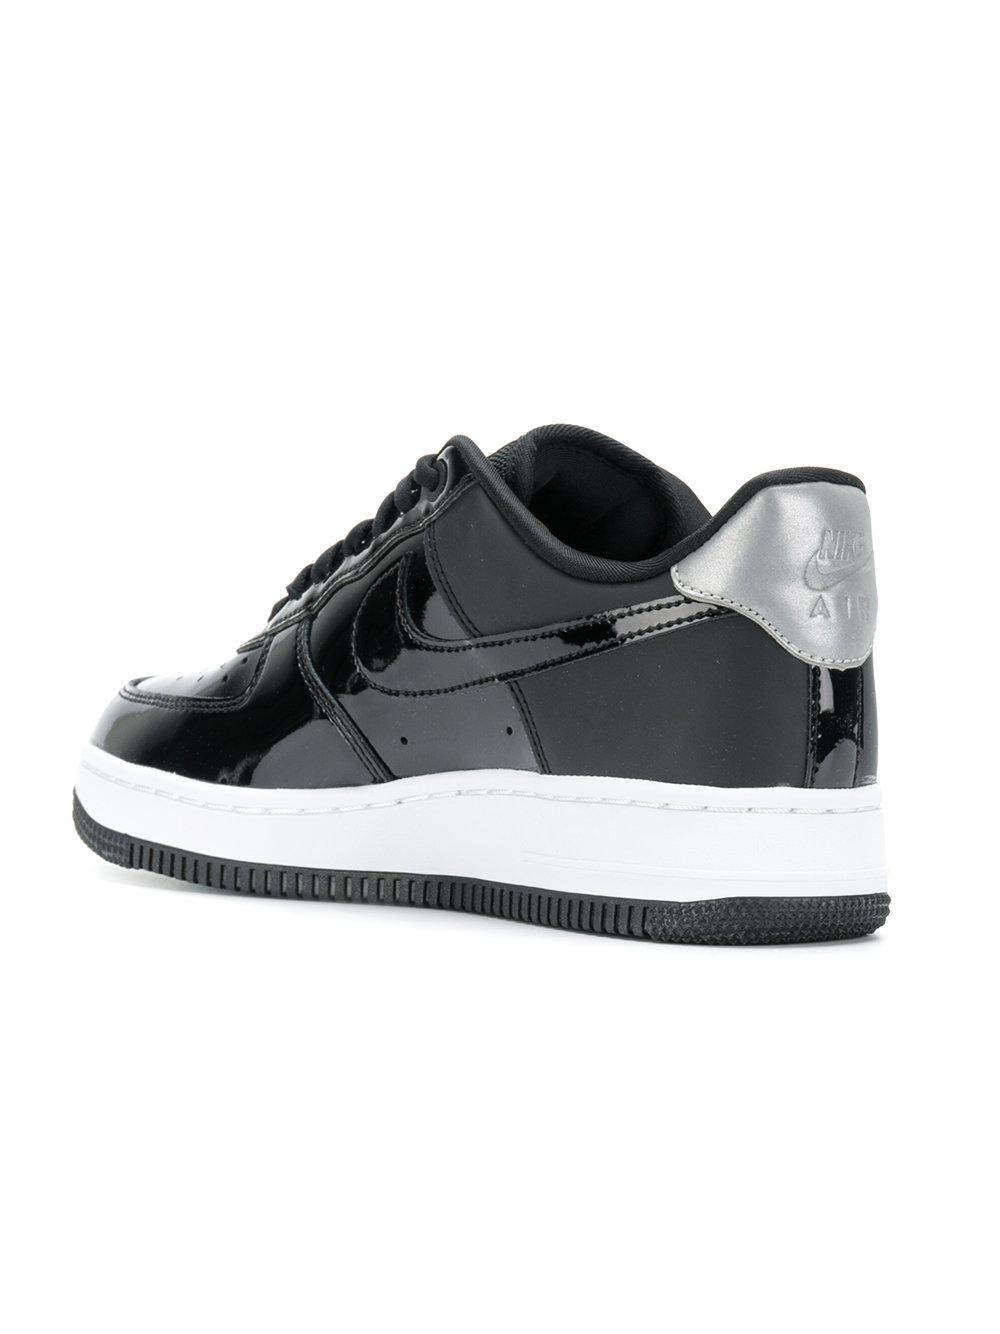 Nike Leather Air Force 1 Sneakers in Black